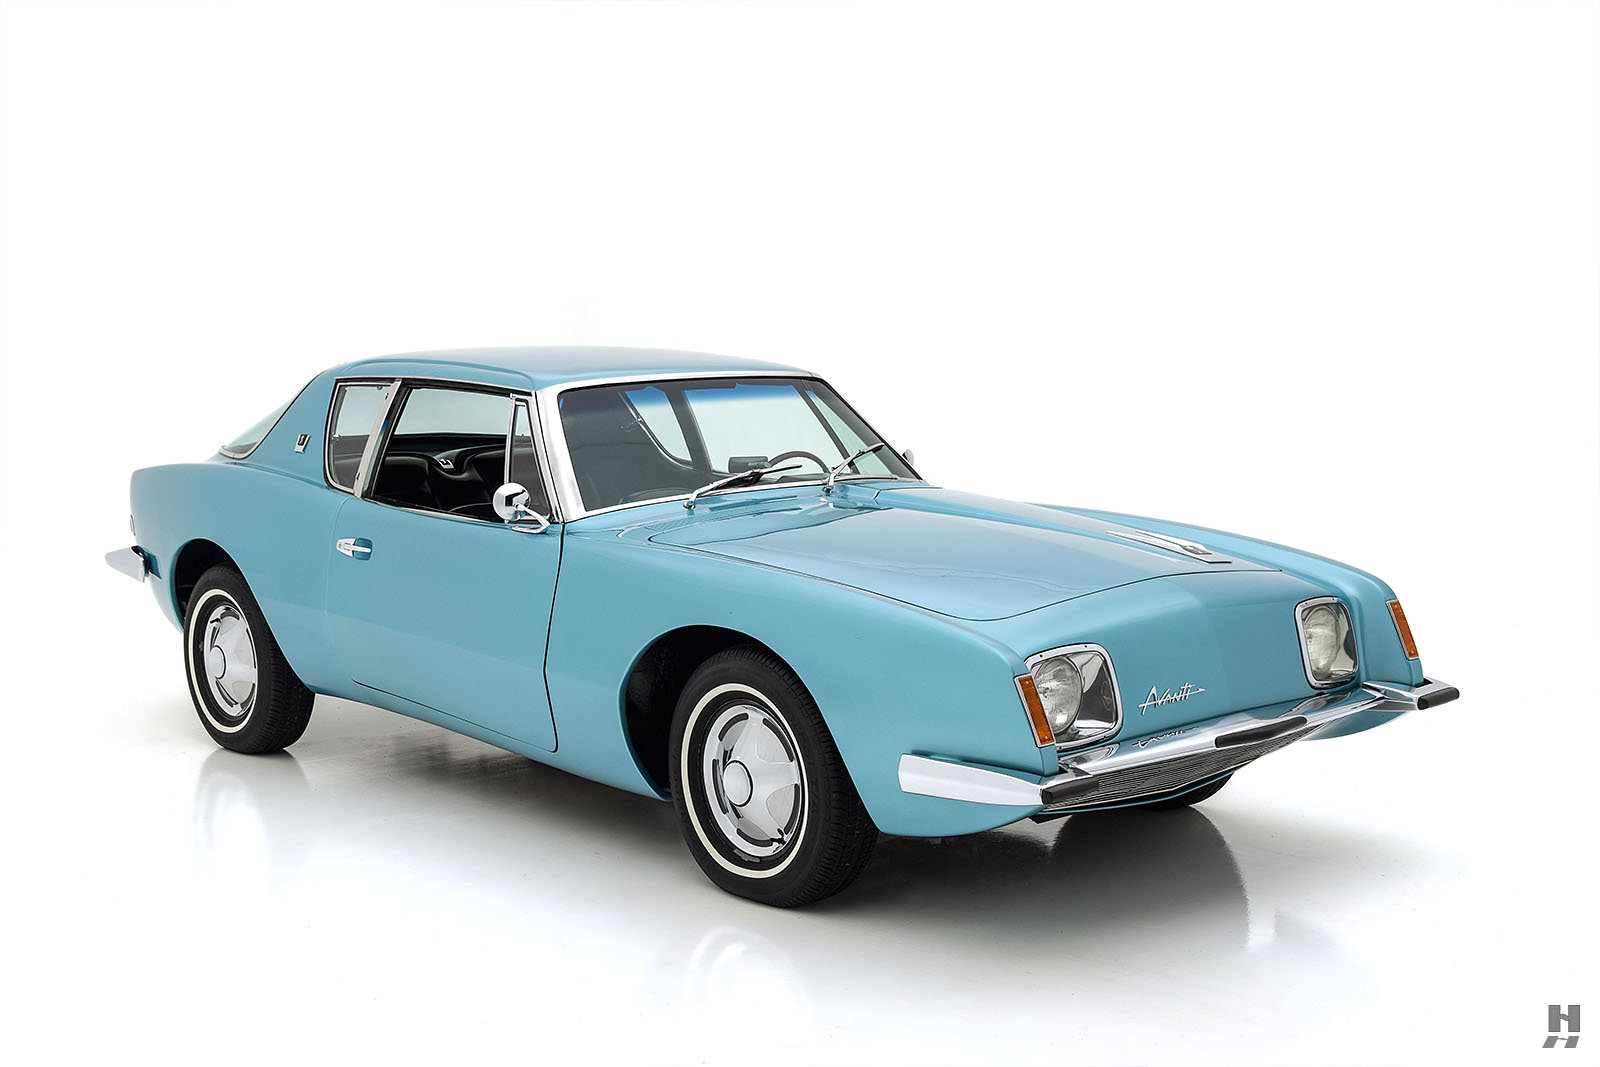 1964 STUDEBAKER AVANTI For Sale (picture 2 of 6)